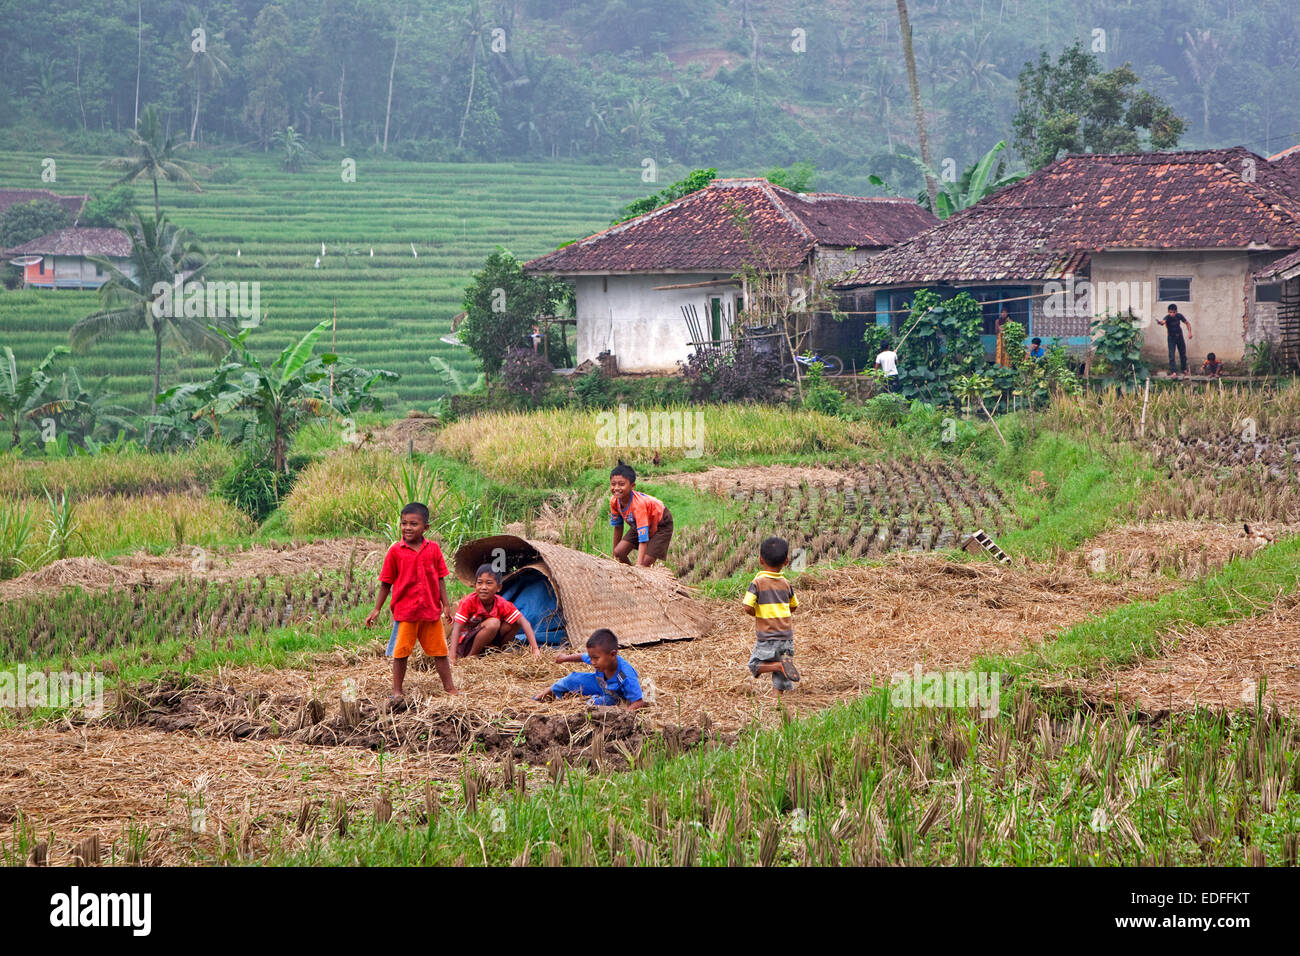 Rural village and Indonesian children playing in rice field, Cianjur Regency, West Java, Indonesia - Stock Image